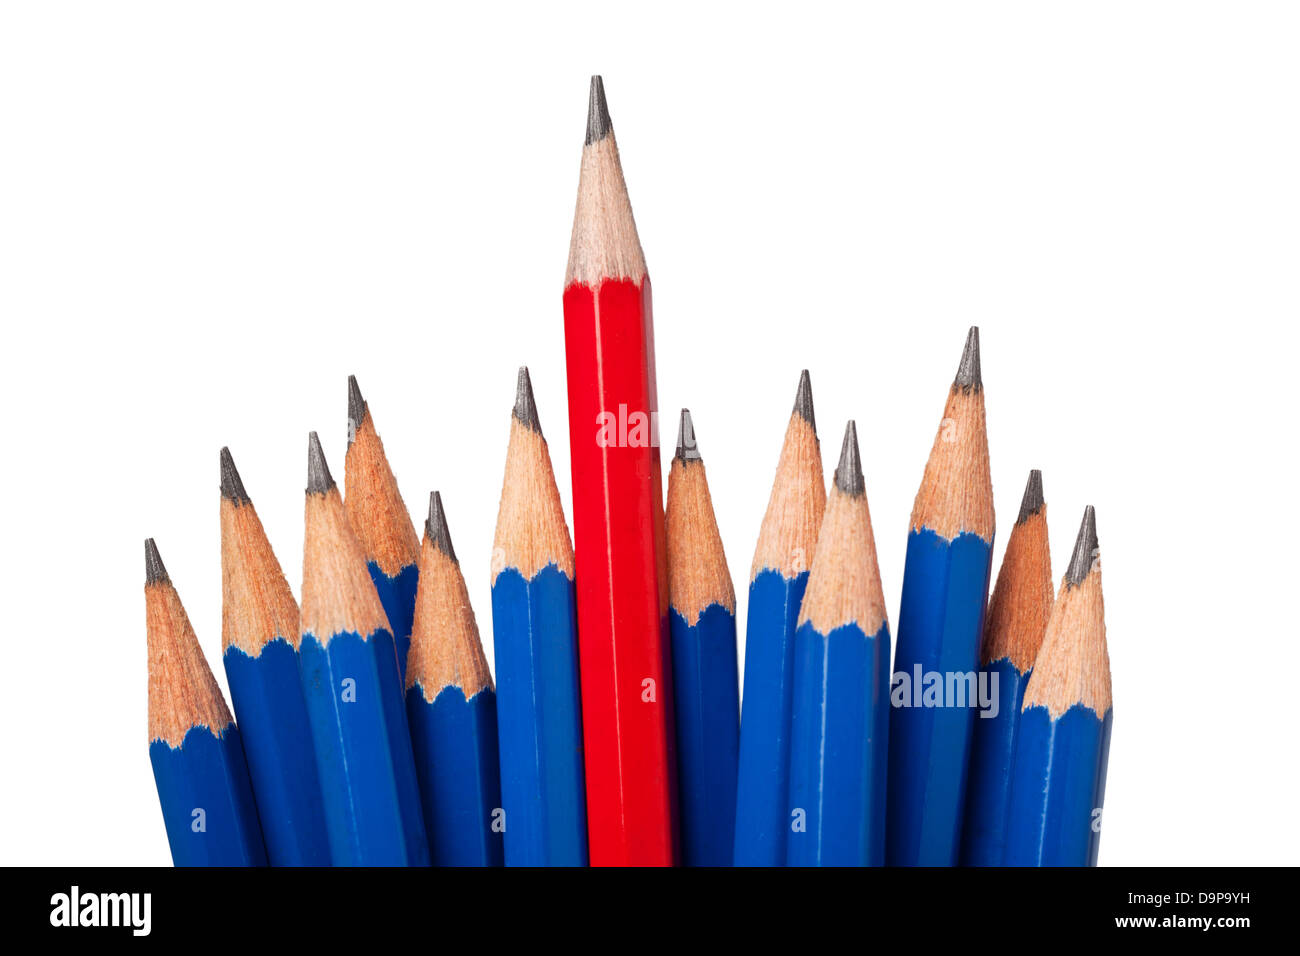 Red pencil standing out from a bunch of blue pencils isolated on white background - Stock Image